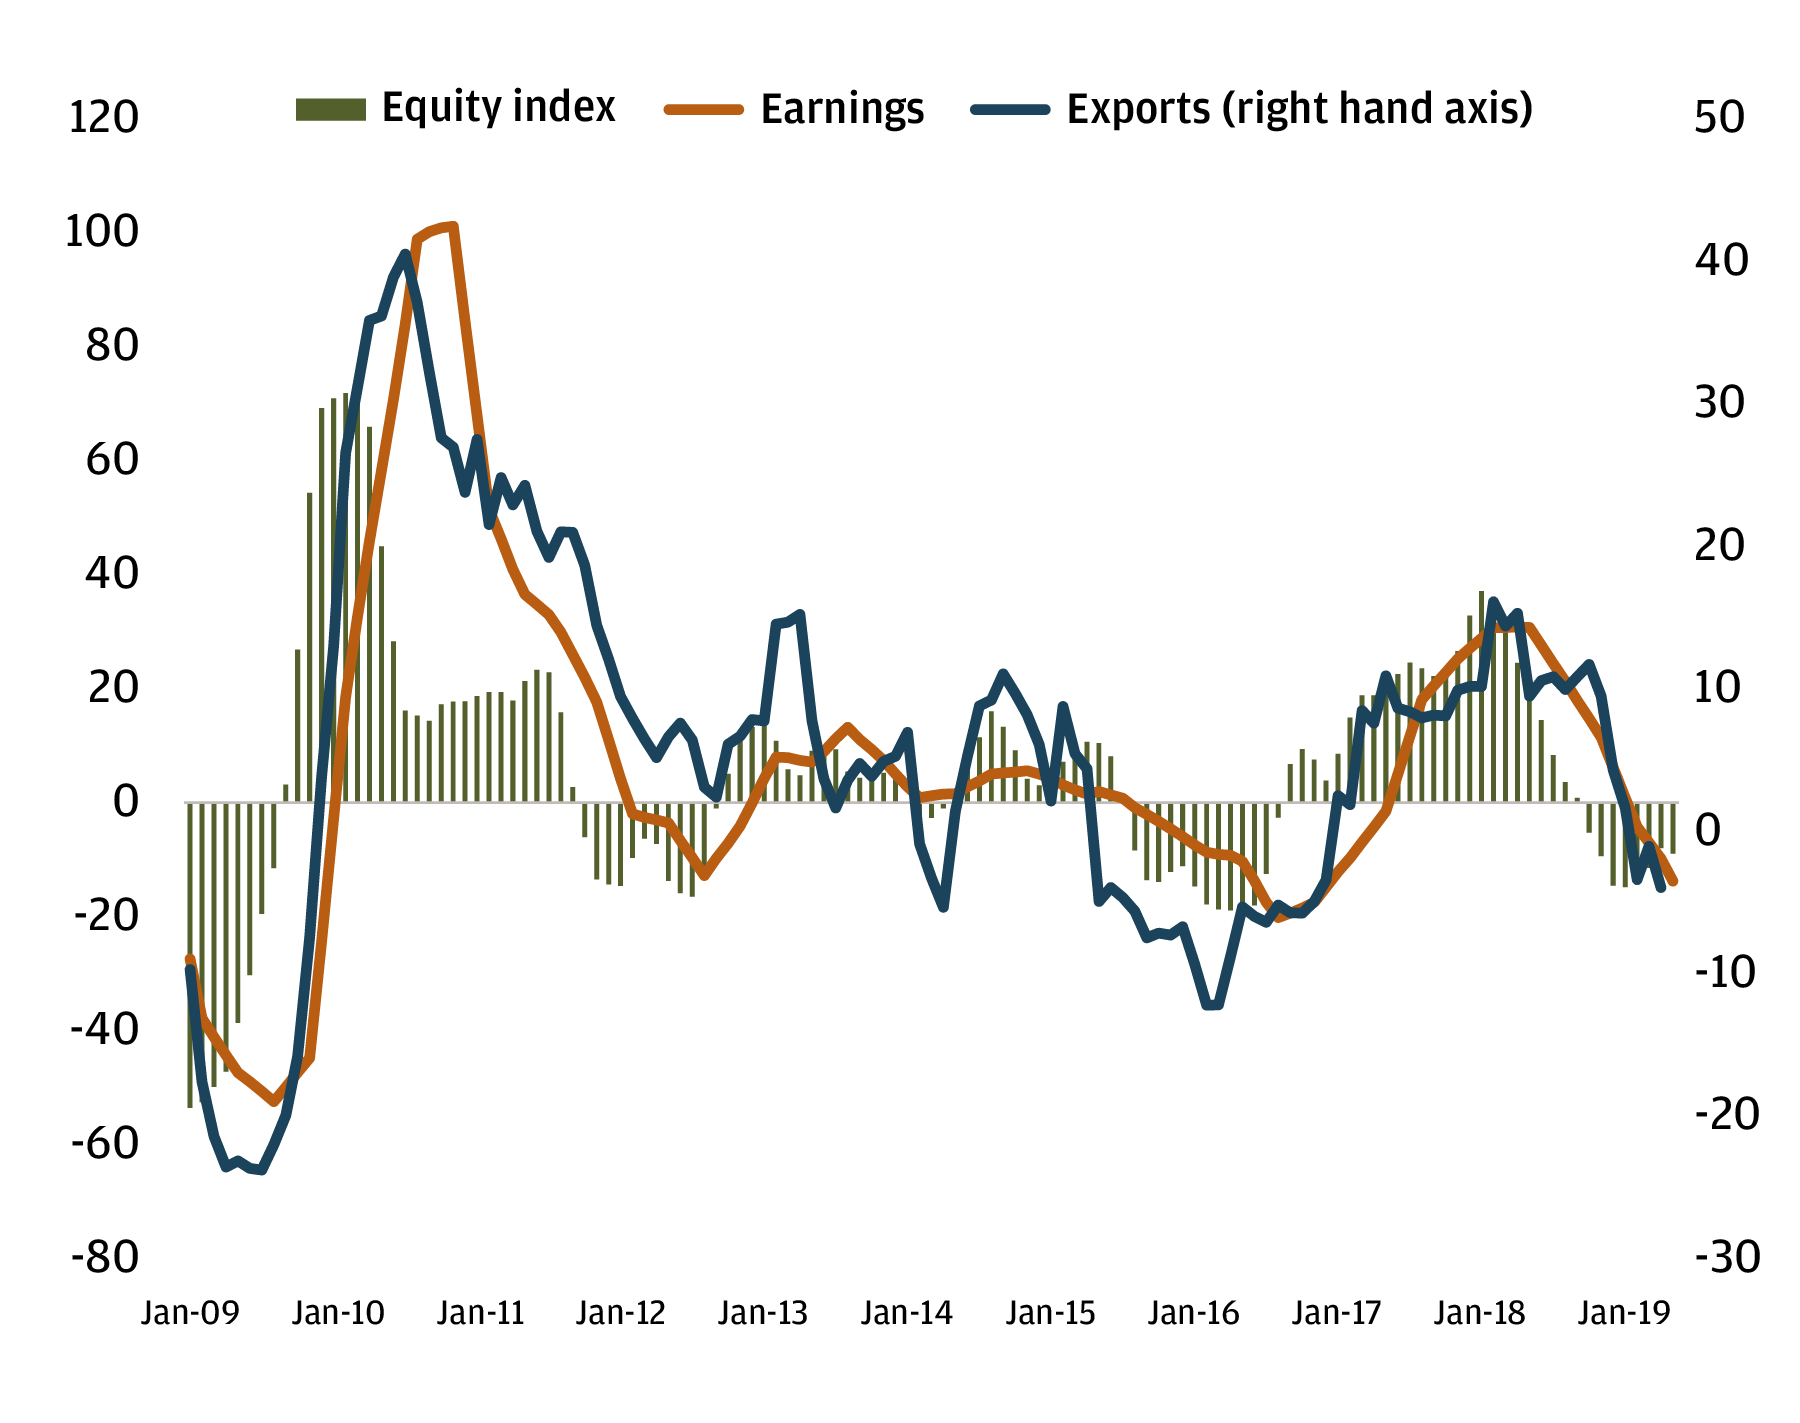 Exhibit 1: How export growth affects earnings and index performance